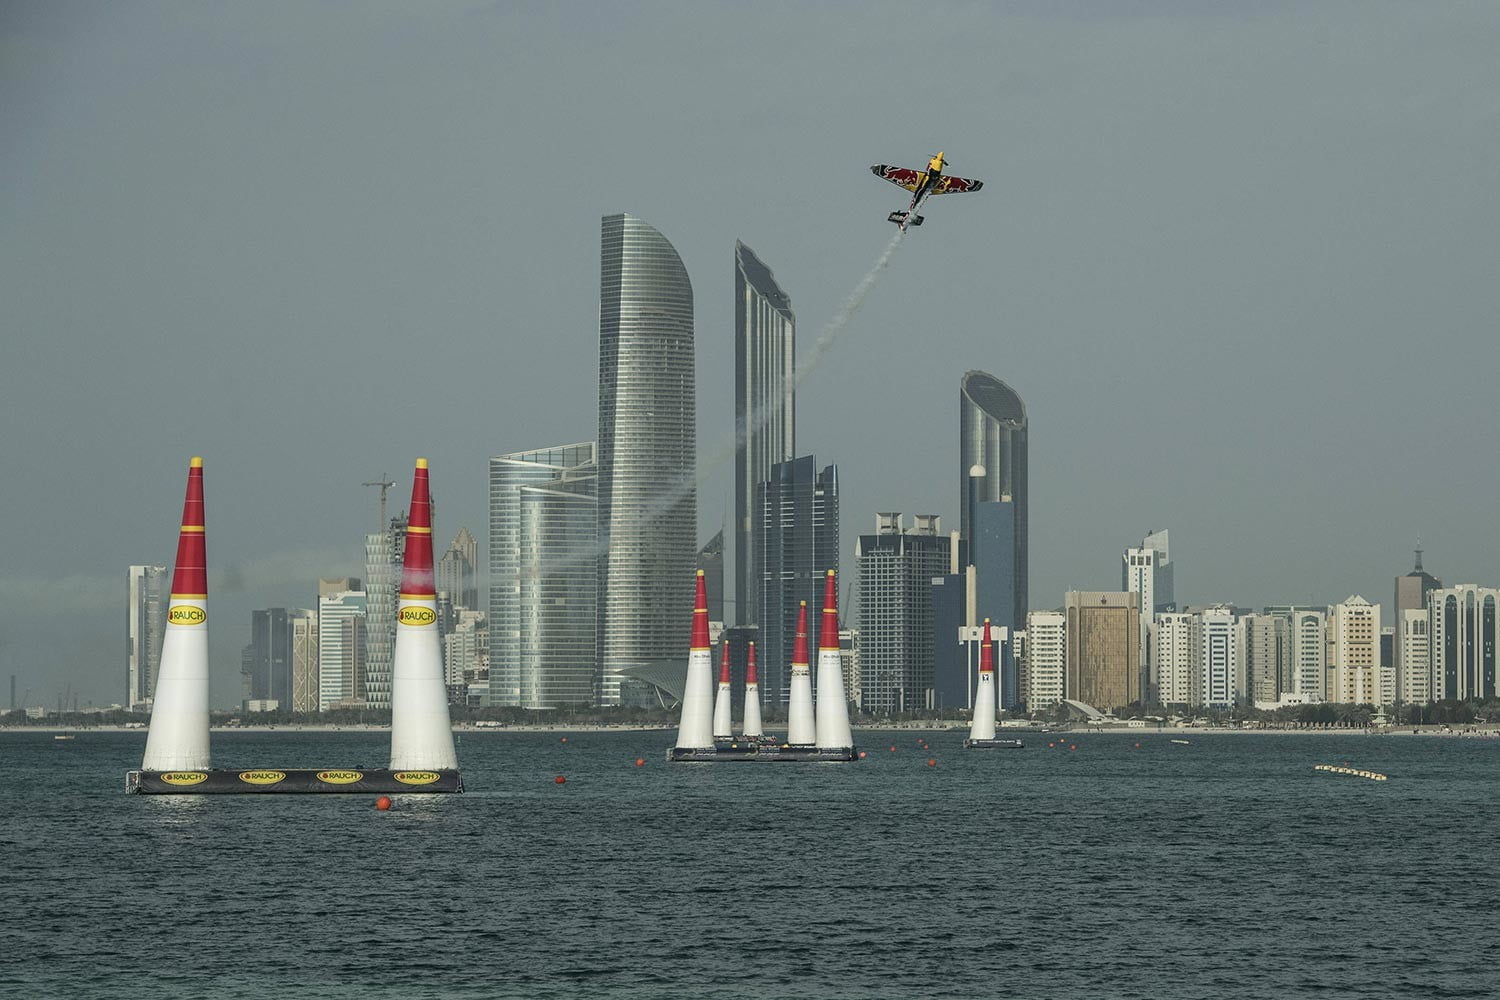 judging red bull air races with tech race abu dhabi 2  jeorg mitter redbull content pool